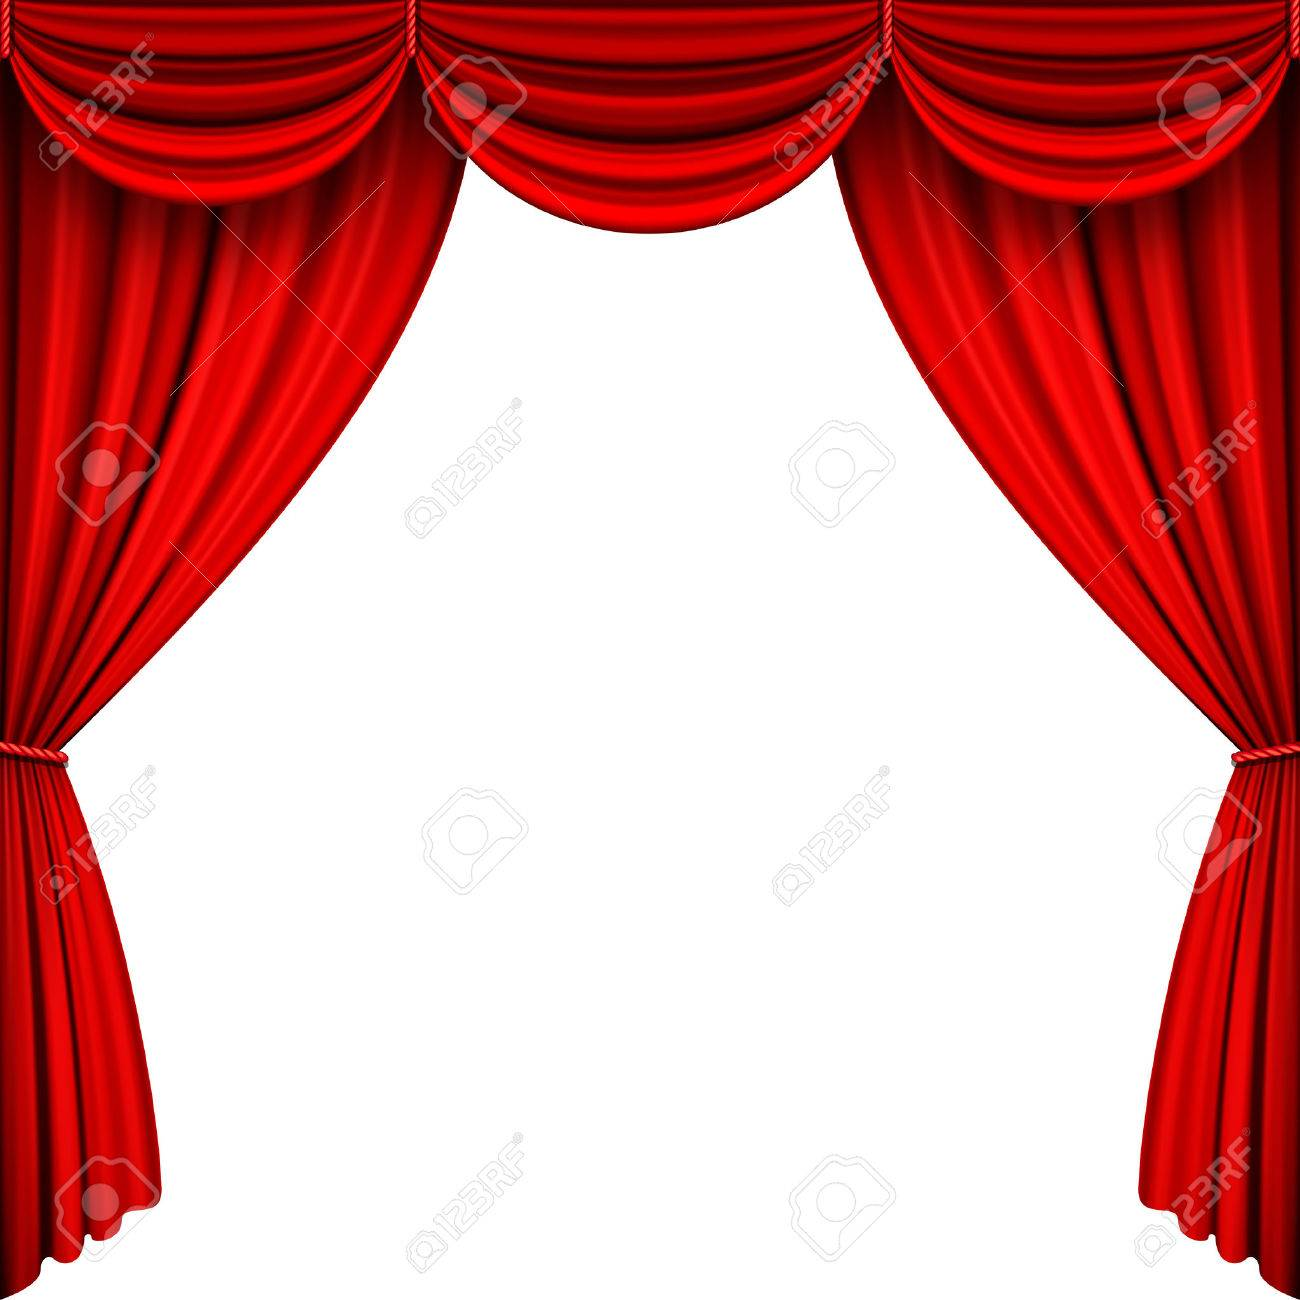 A Vector Illustrations Of Red Full Stage Curtains Stock